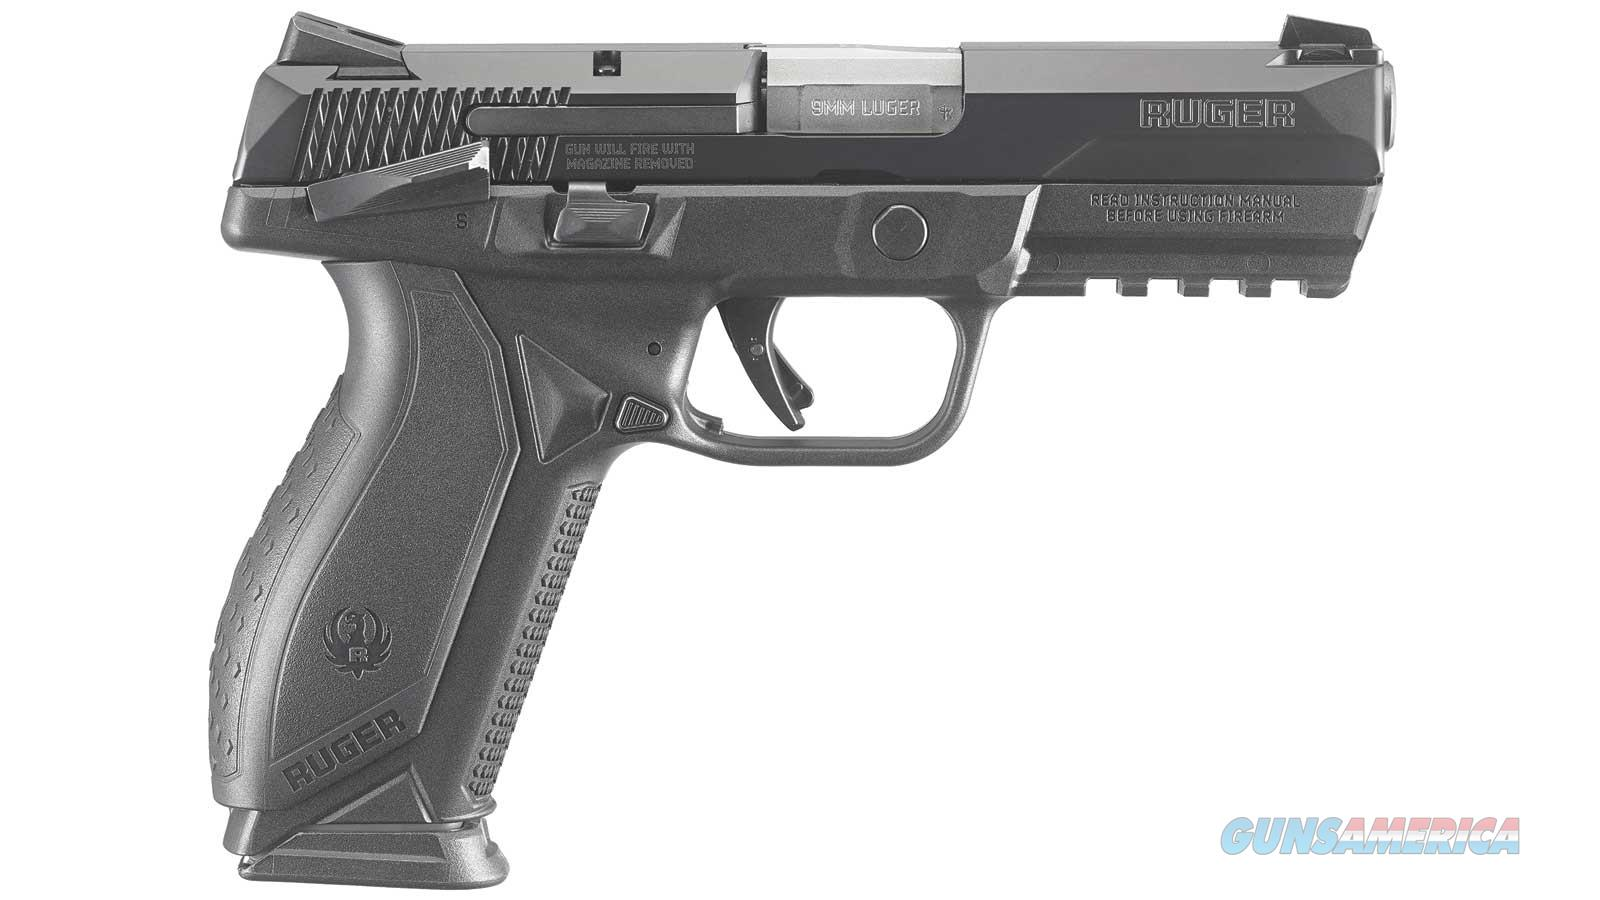 RUGER AMERICAN PISTOL 9MM 4.2 MSAFETY MA LEGAL 8661 Guns > Pistols > Ruger Semi-Auto Pistols > American Pistol